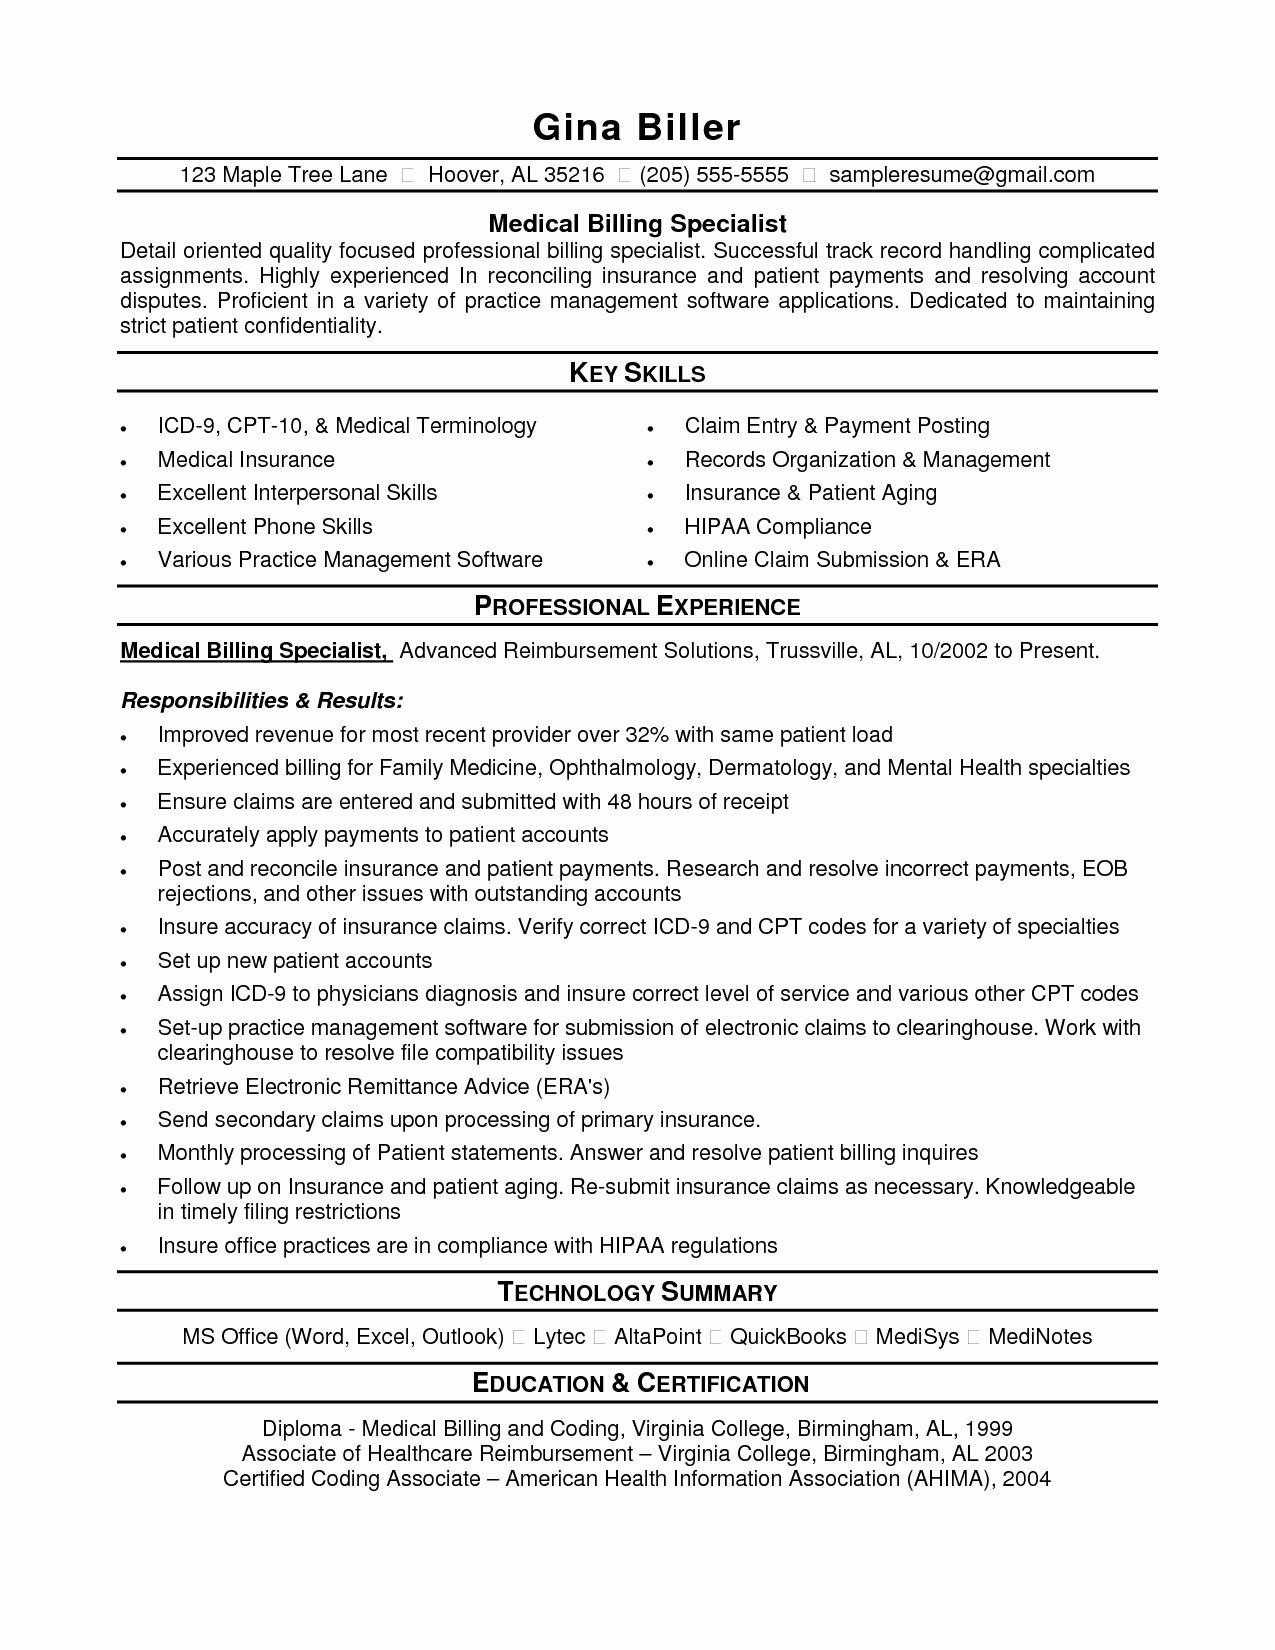 Medical Coder Resume Template - Medical Coding Resume Samples Valid Medical Billing Resume Sample